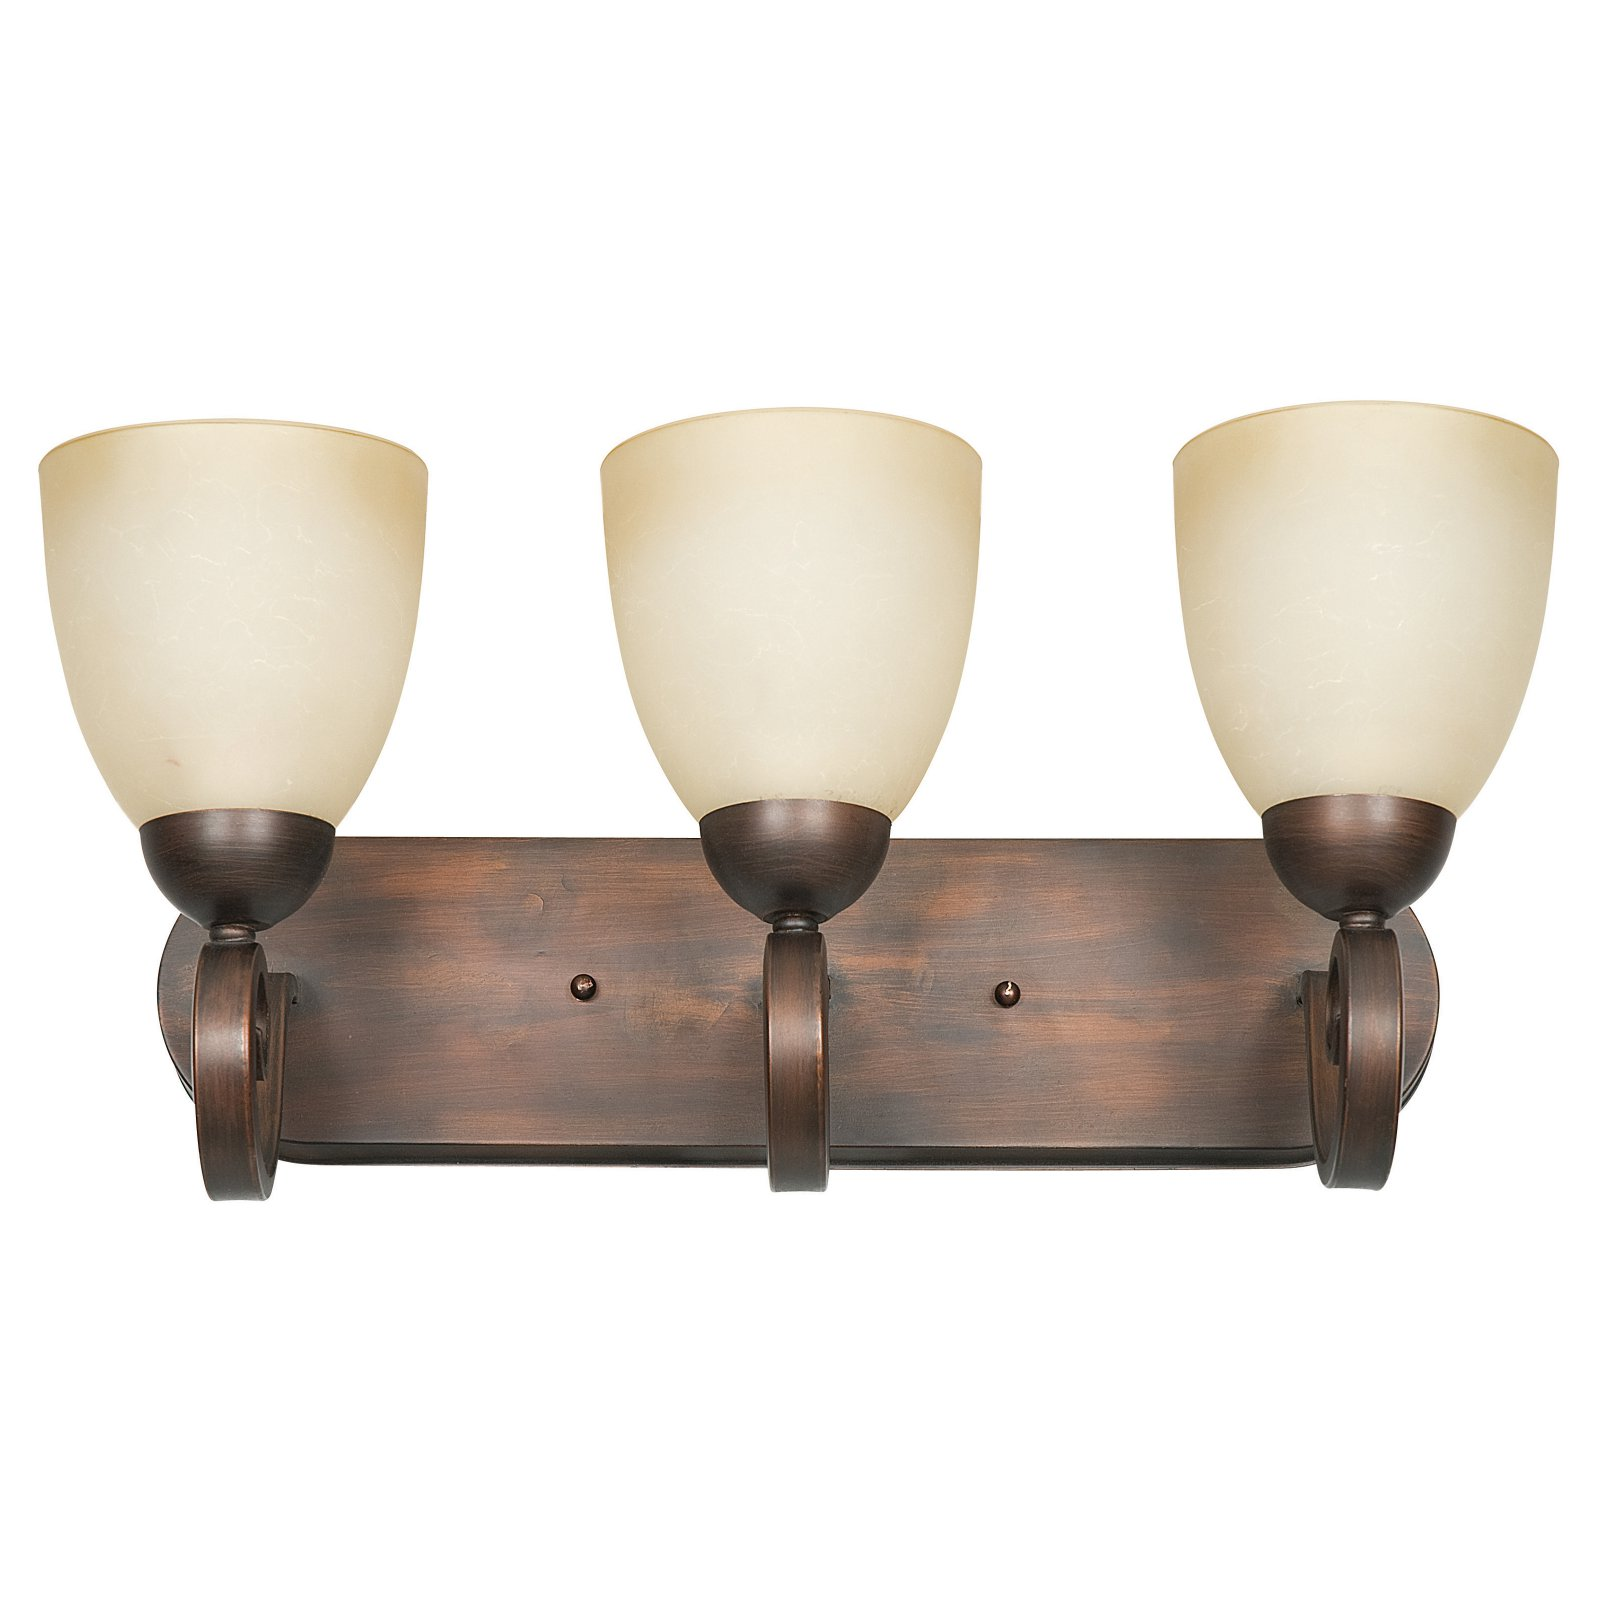 Sunset Lighting Provano 3 Light Bath Vanity Light